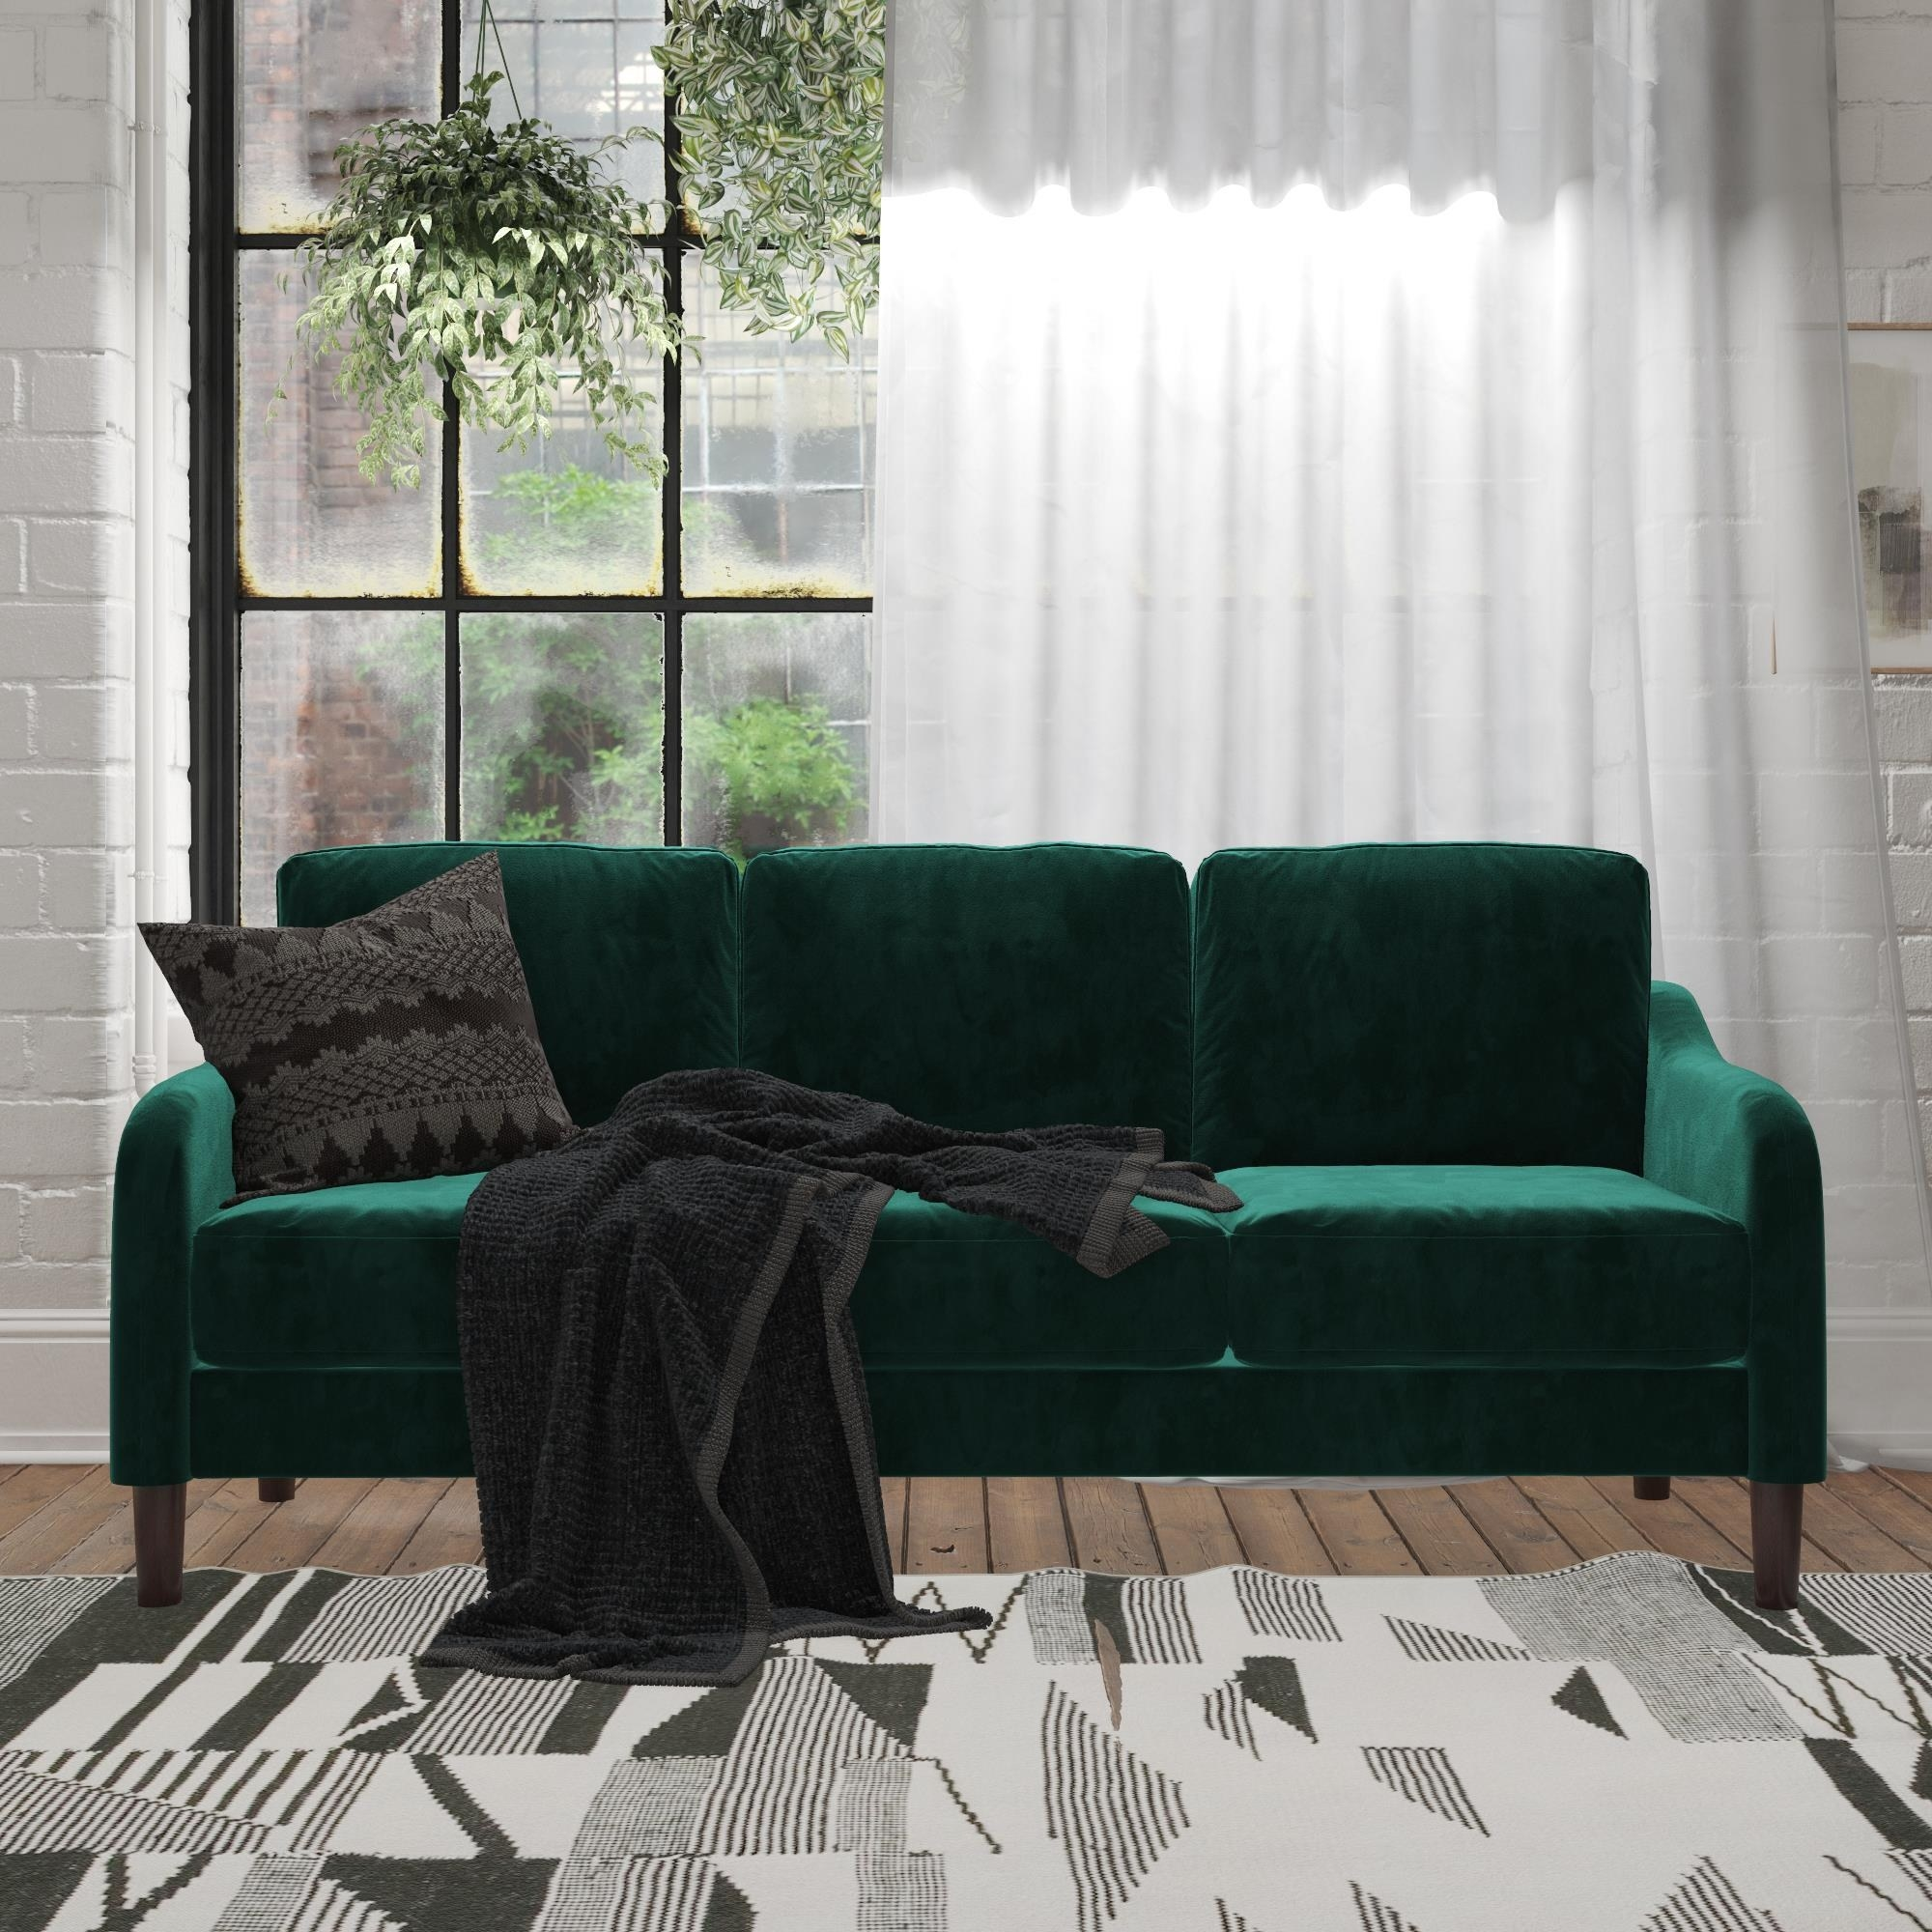 The green velvet couch with three cushions and brown legs in a living room